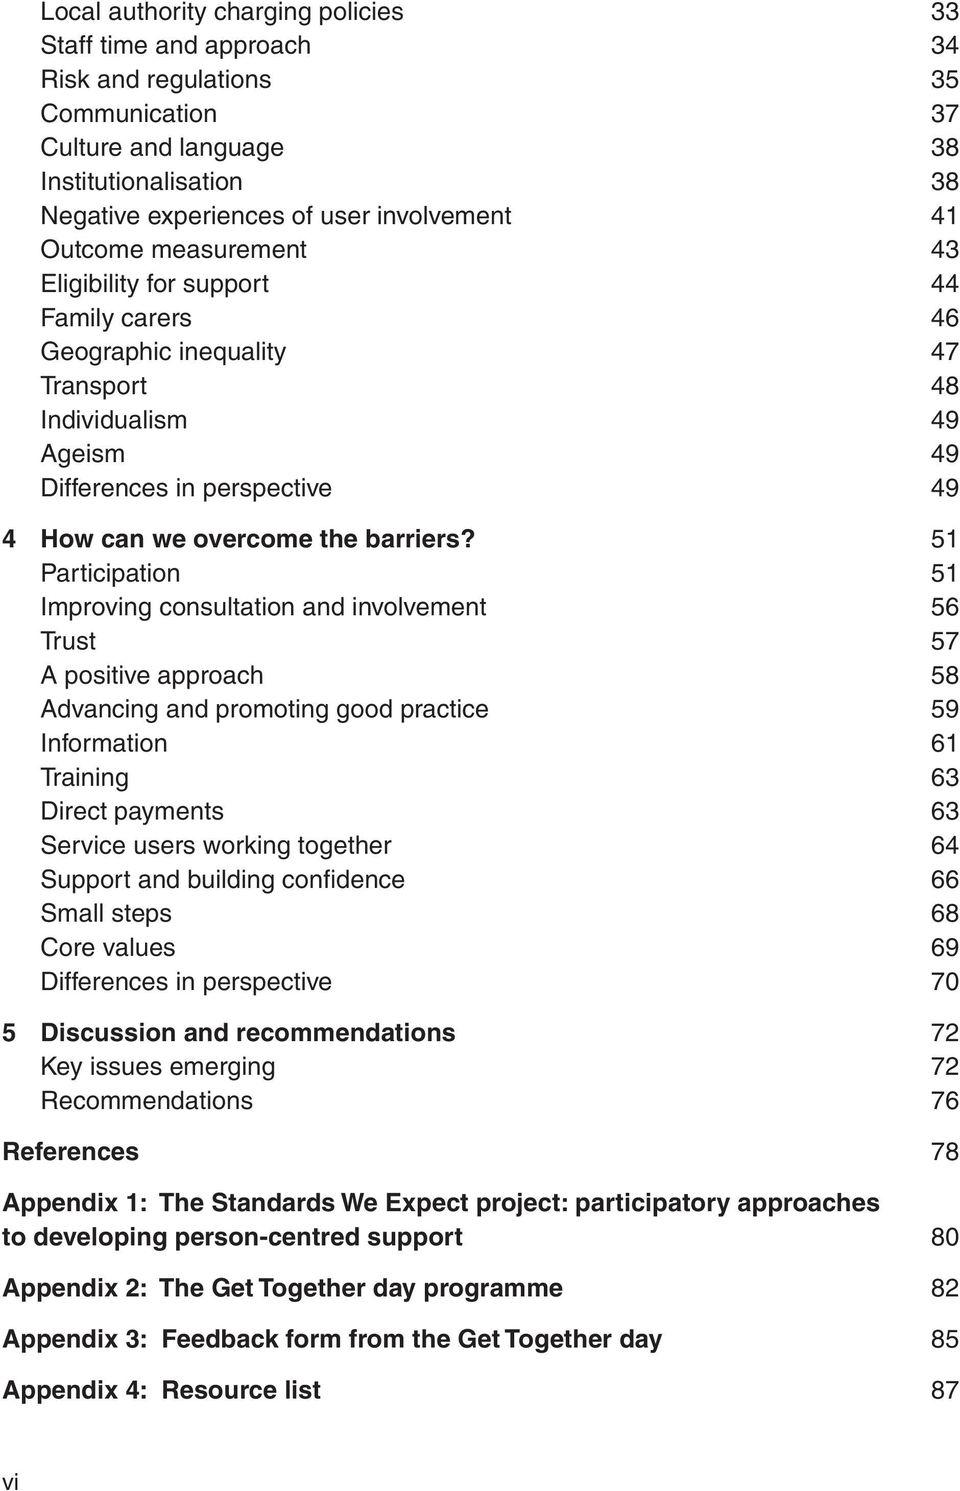 51 Participation 51 Improving consultation and involvement 56 Trust 57 A positive approach 58 Advancing and promoting good practice 59 Information 61 Training 63 Direct payments 63 Service users